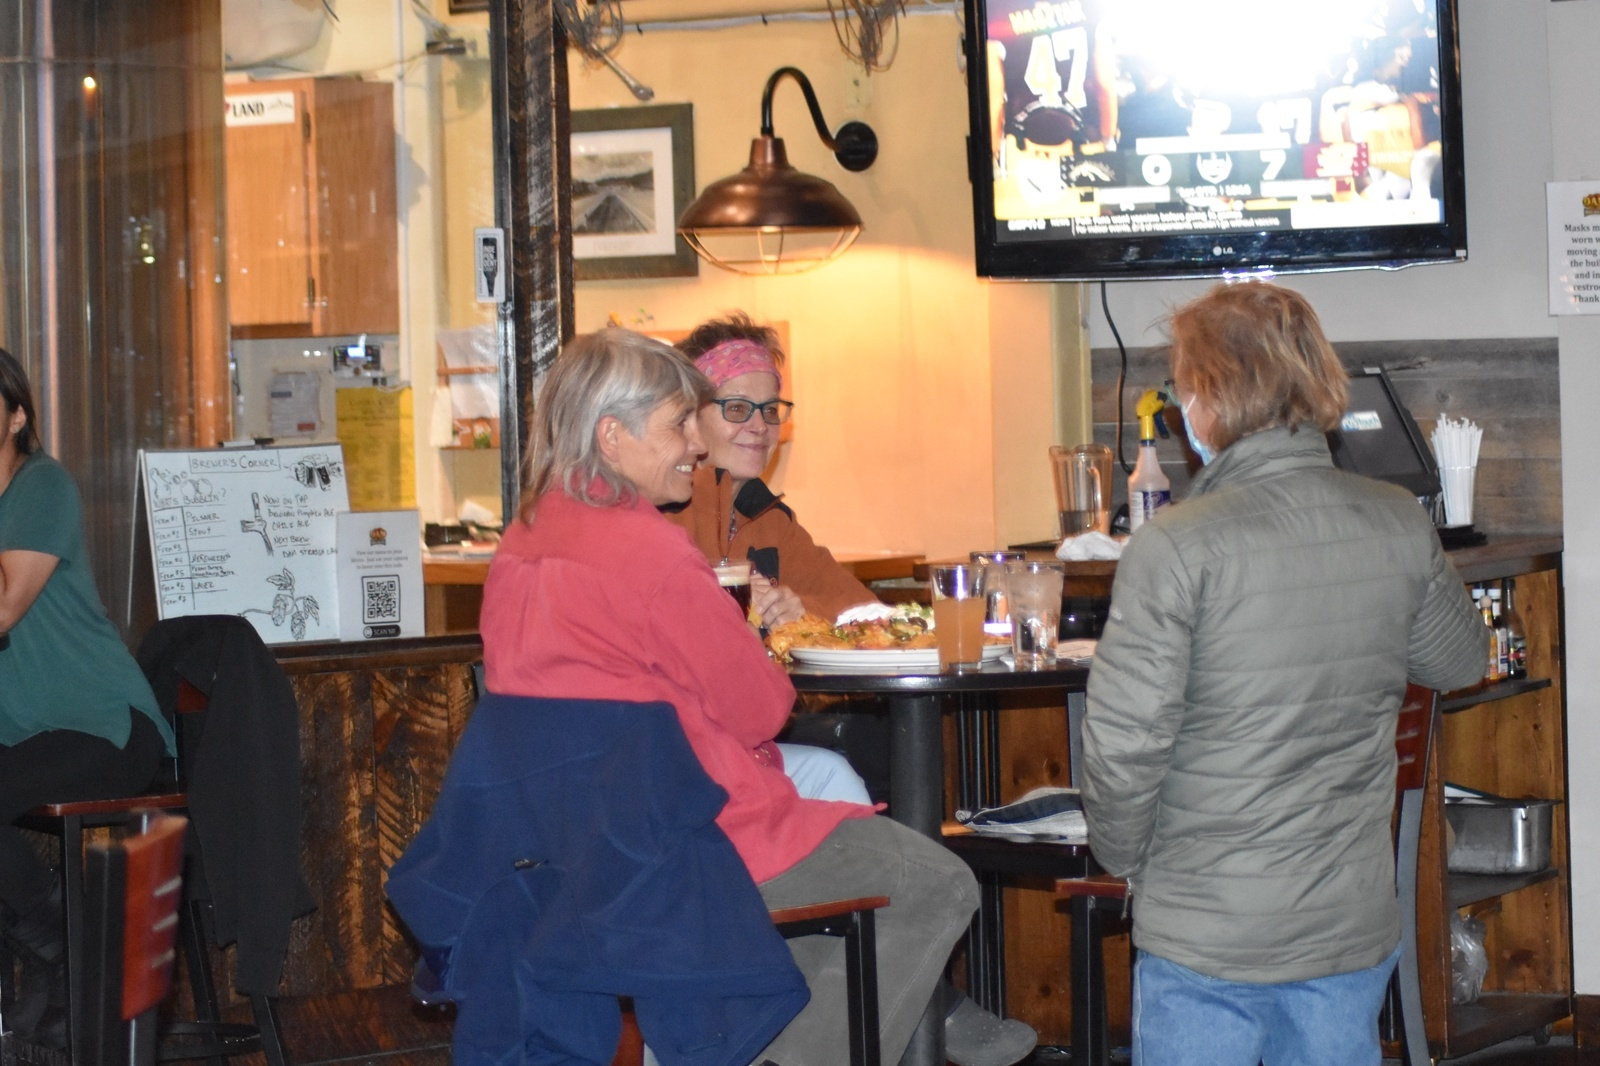 Diners eat at Dillon Dam Brewery on Wednesday, Nov. 18. Restaurants in Summit County will be subject to new restrictions beginning at 5 p.m. Sunday, Nov. 22, including an 8 p.m. last call and no indoor dining. | Photo by Taylor Sienkiewicz / tsienkiewicz@summitdaily.com